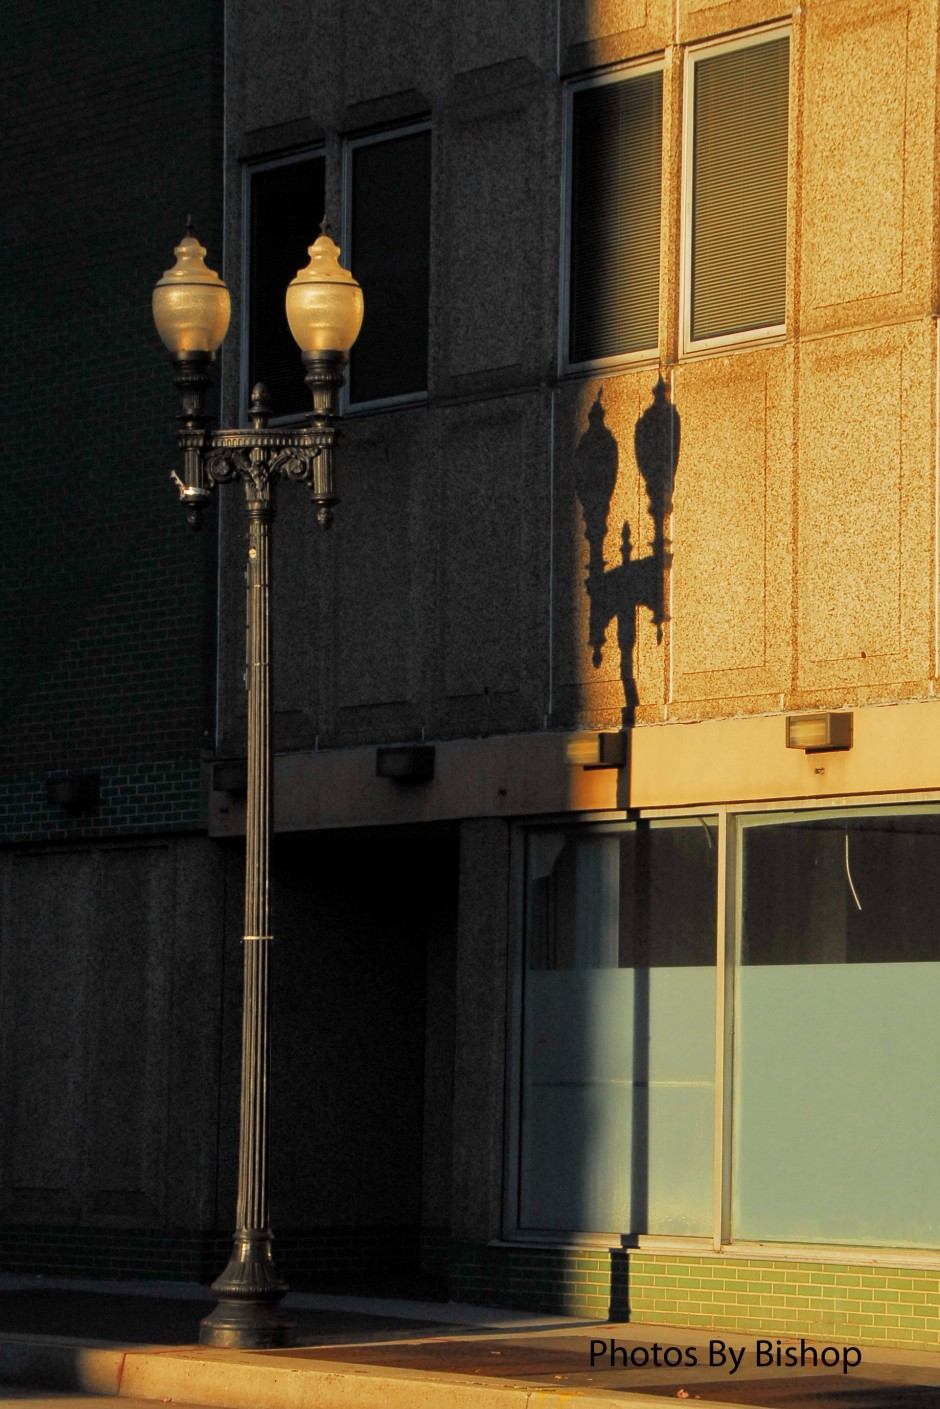 Knoxville, Tennessee evening shadows.